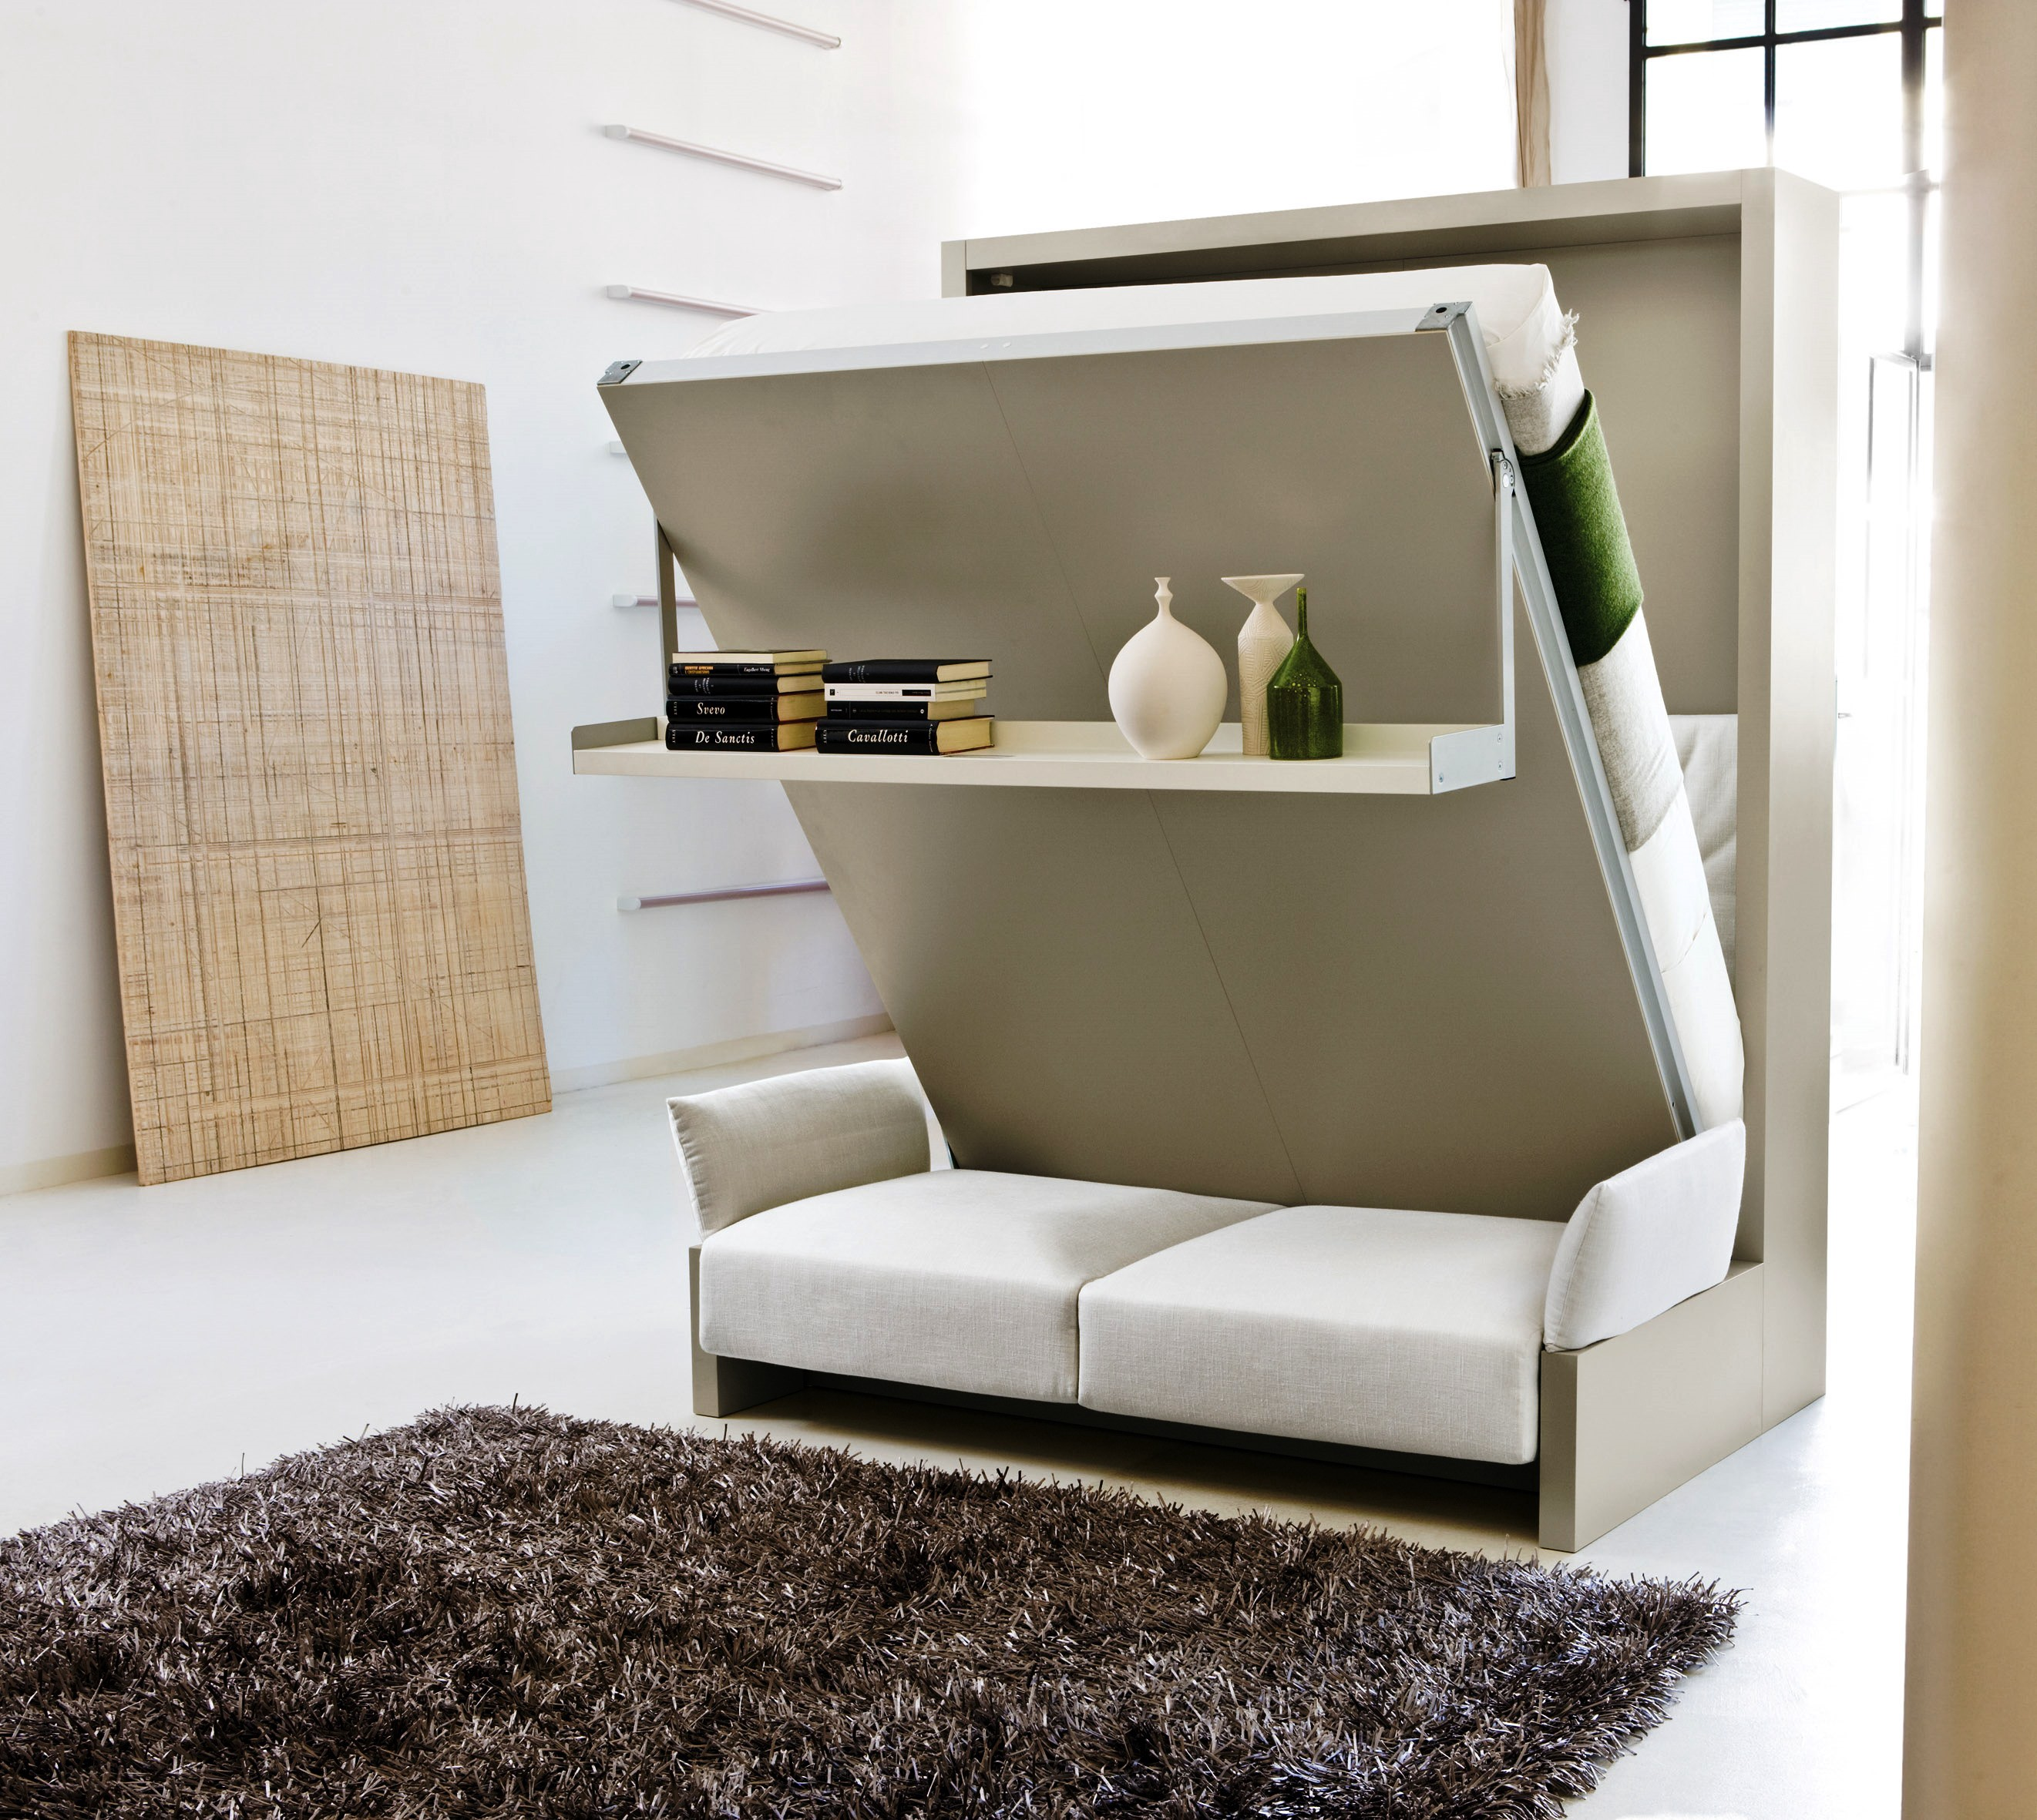 Best Space Saving Furniture Ideas for Small Bedroom  by Taylor